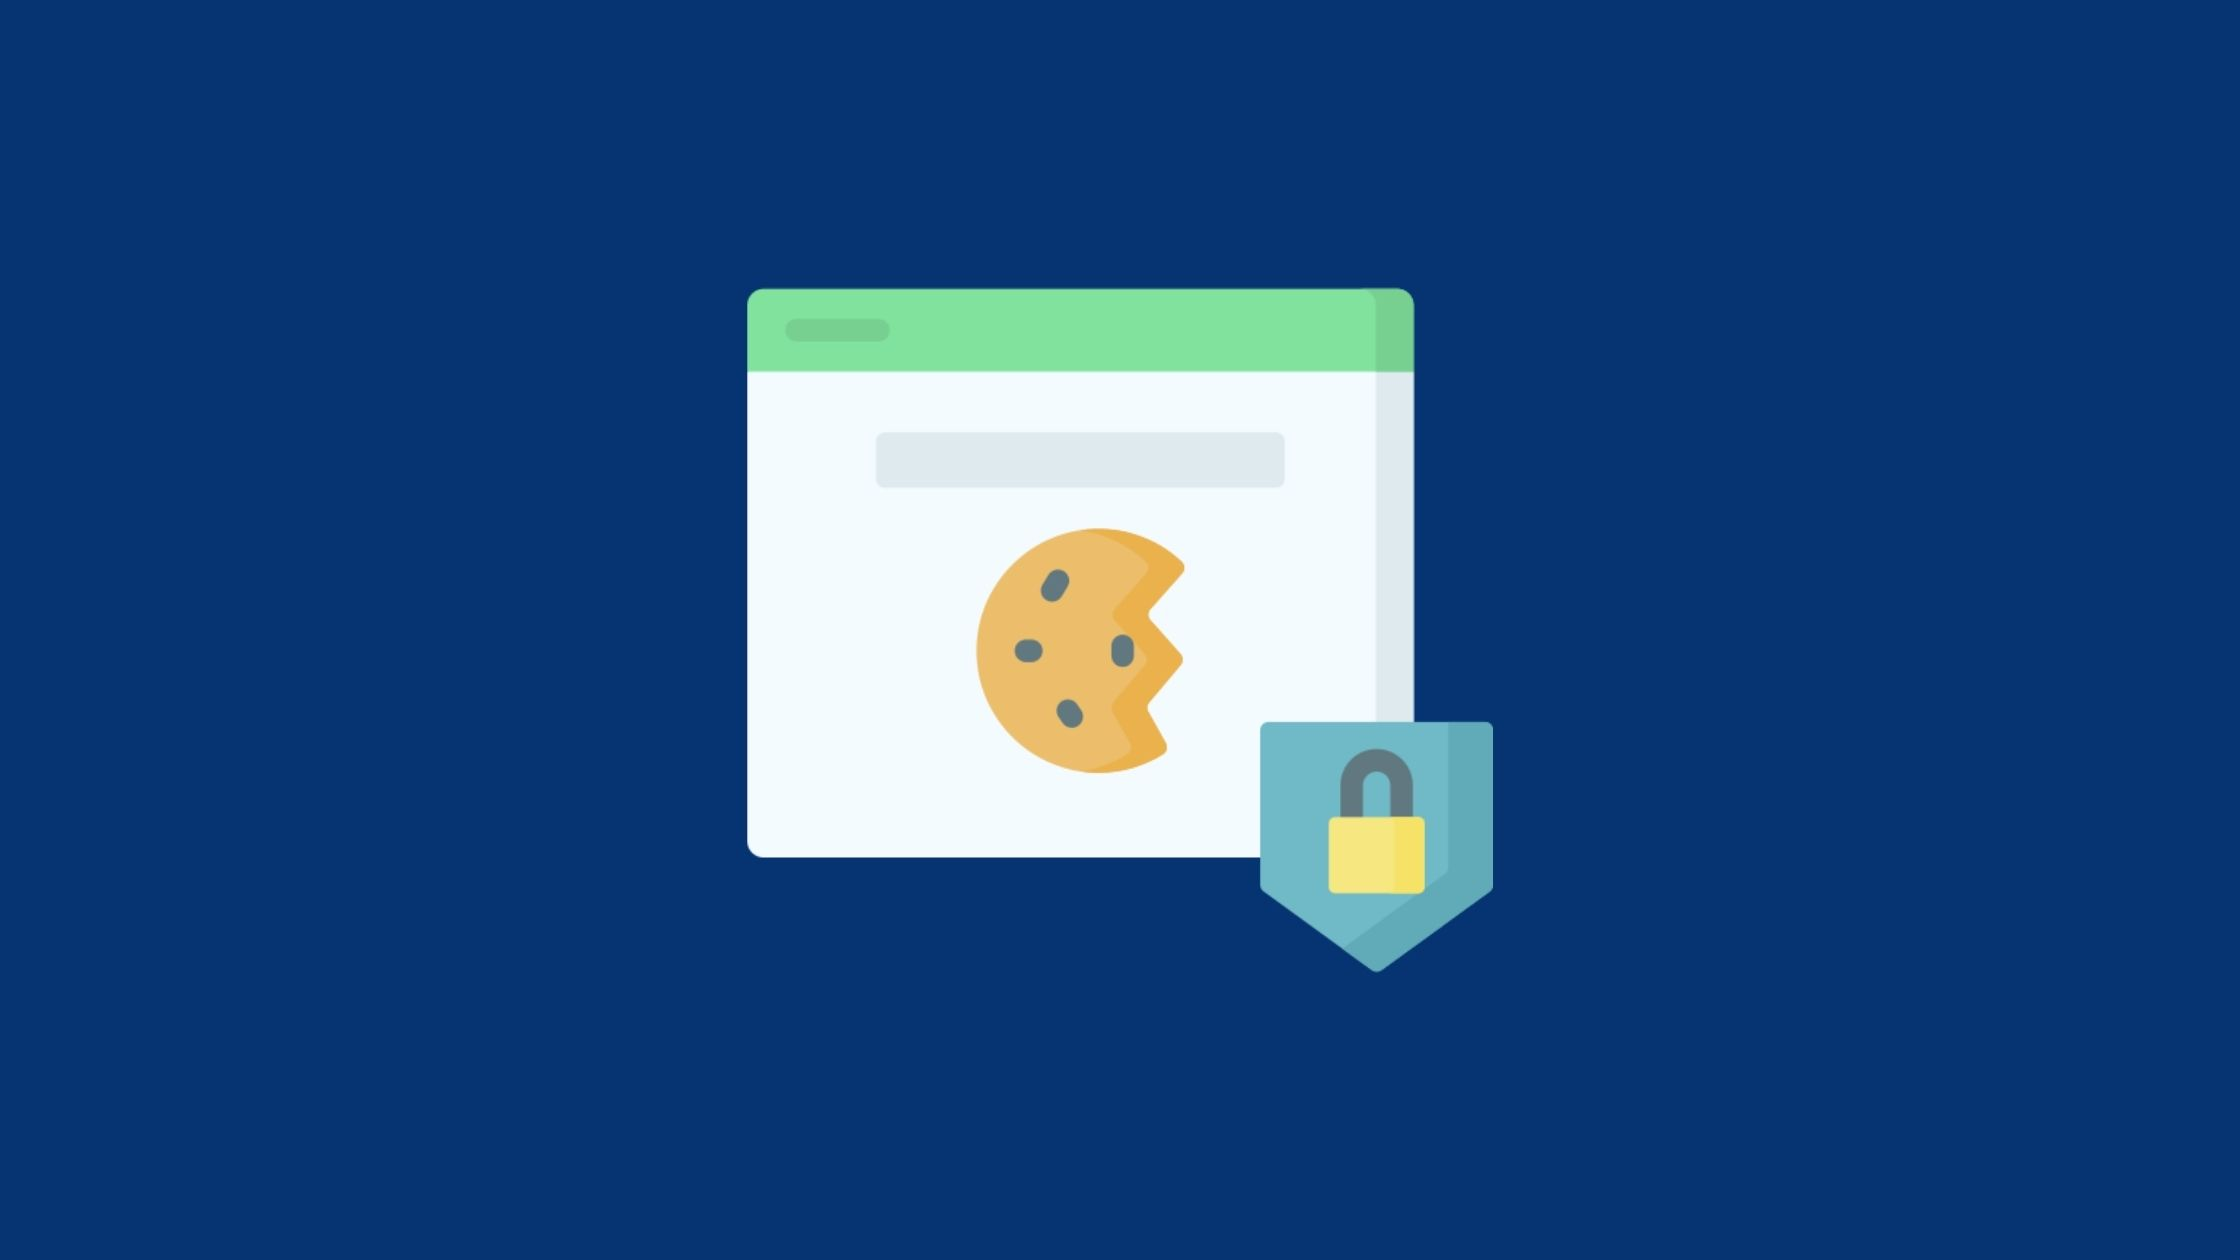 No Crumbs Allowed: The End of Third Party Cookies